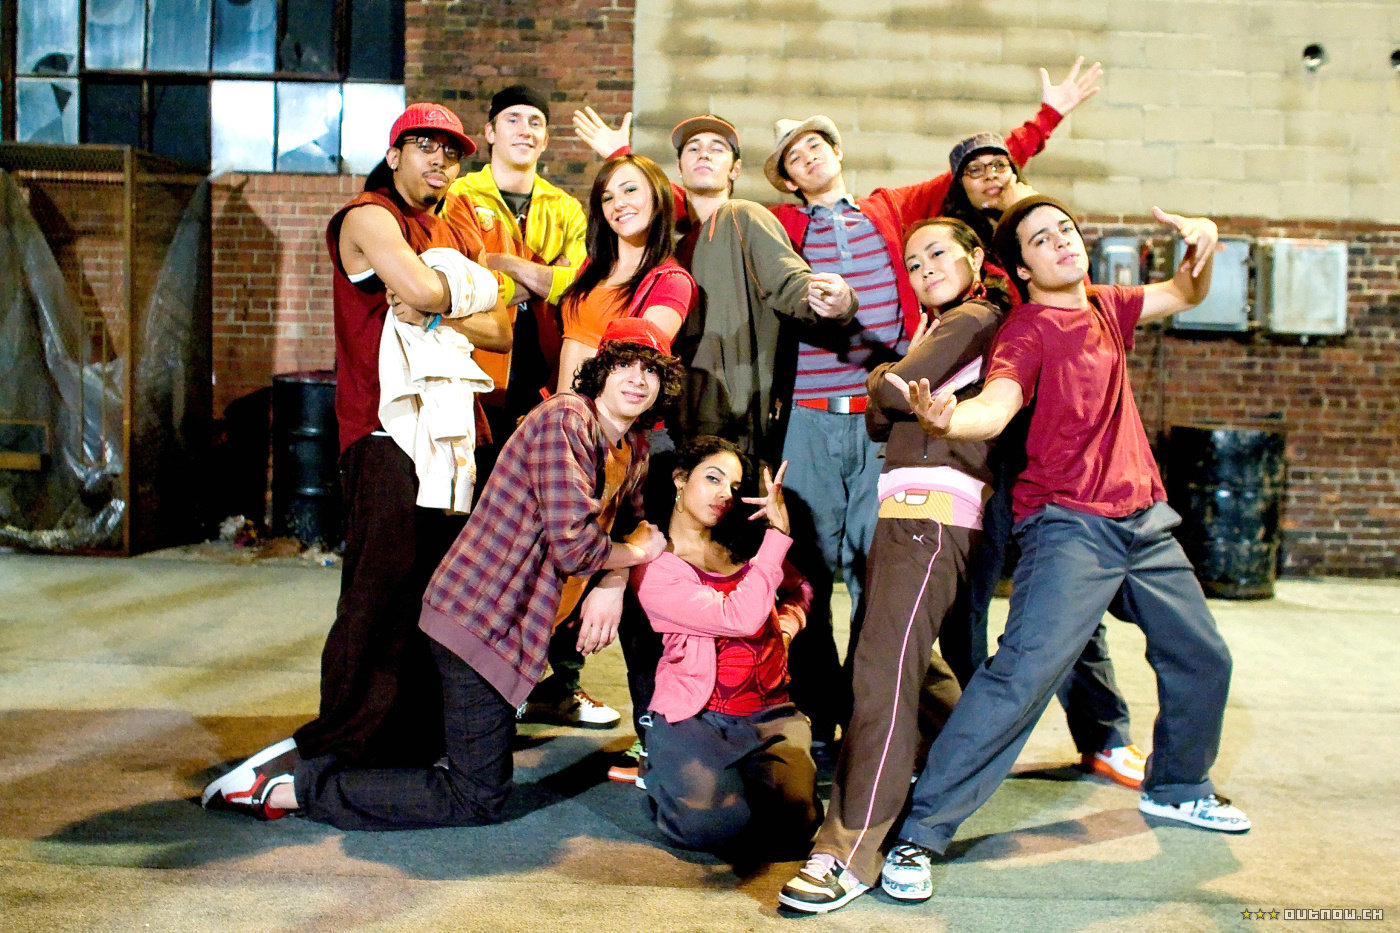 Step up 2 the streets cast